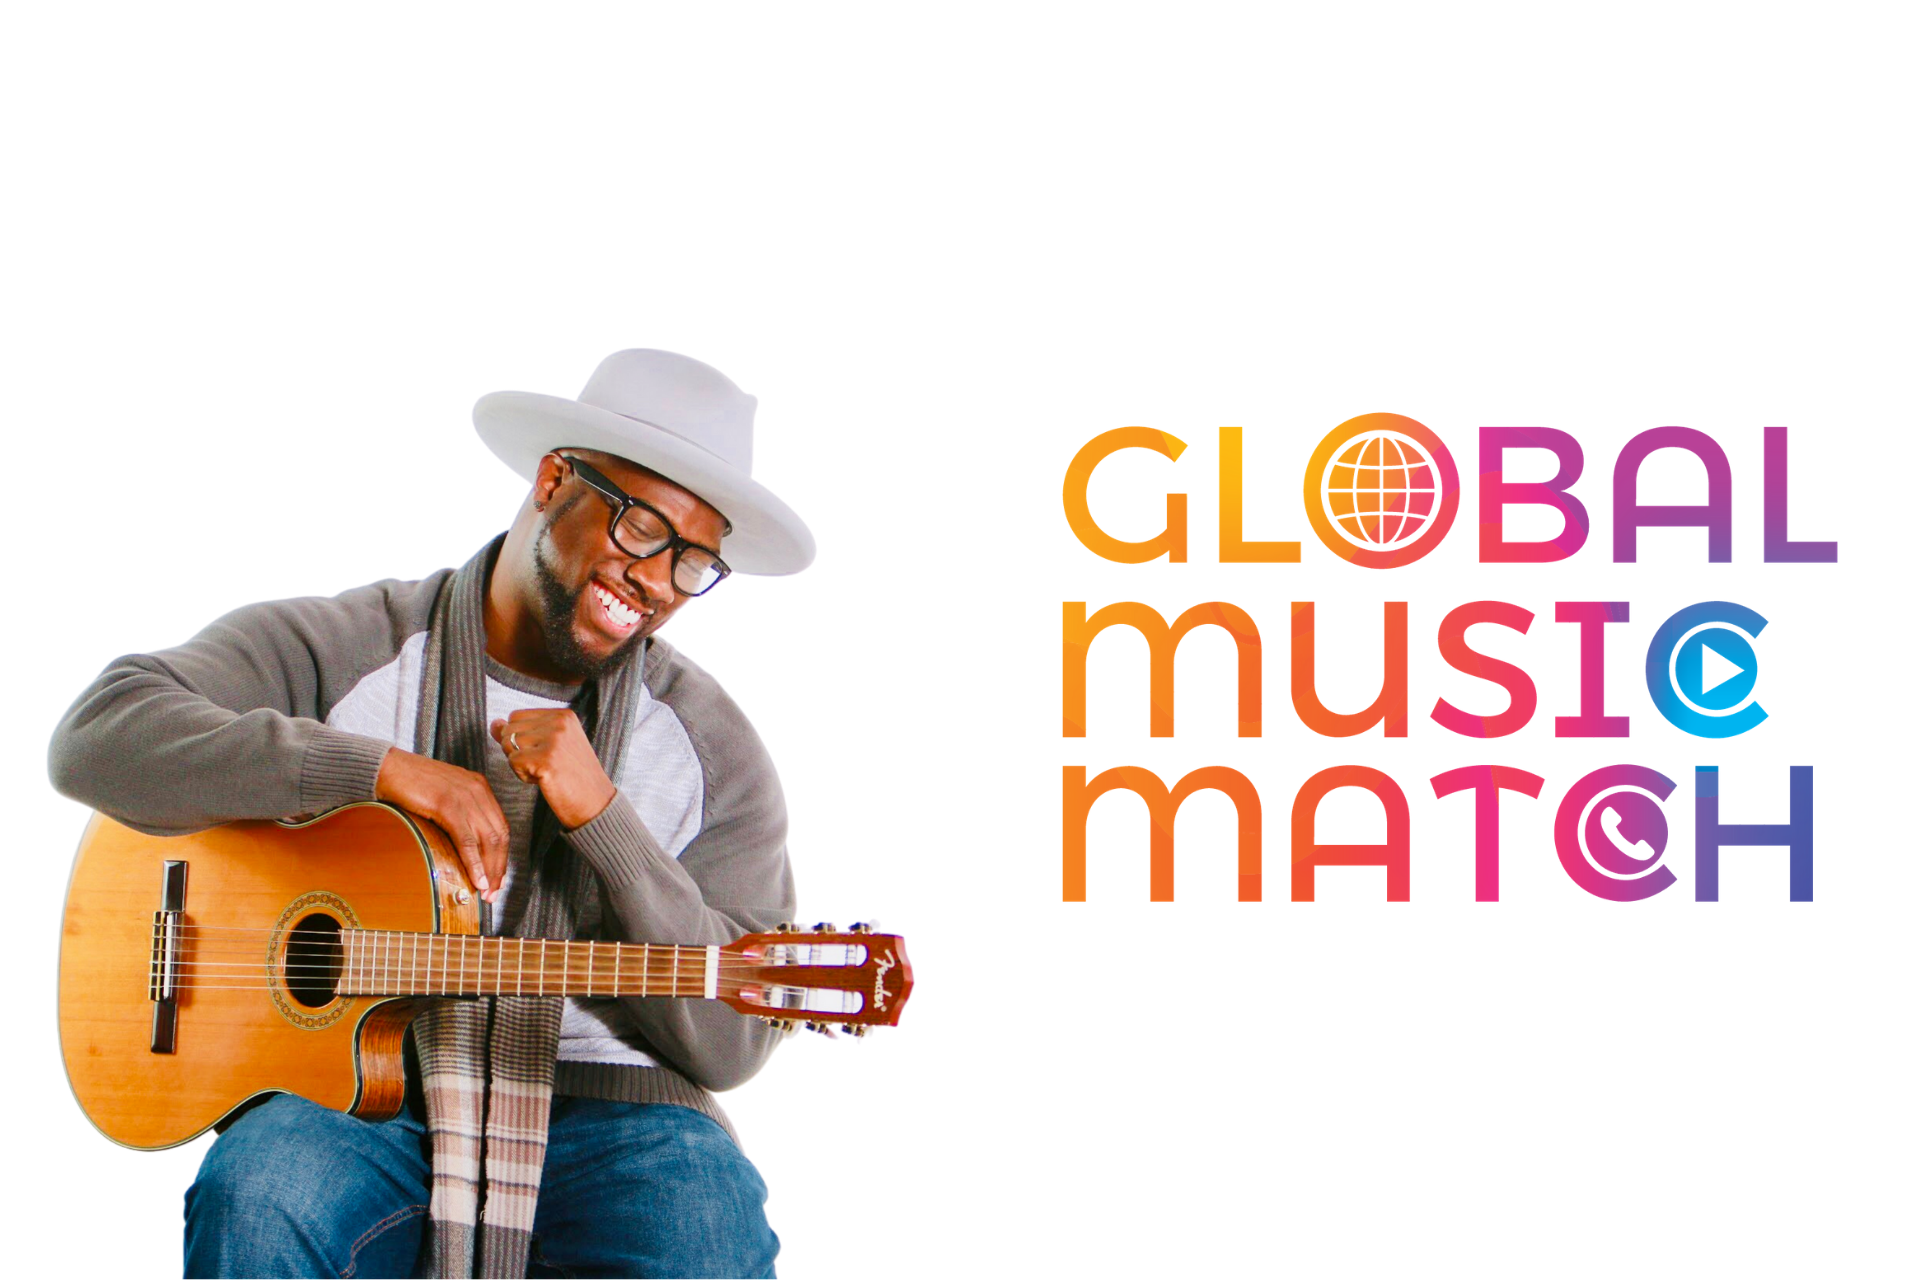 SaulPaul Represents the U.S. in the Global Music Match